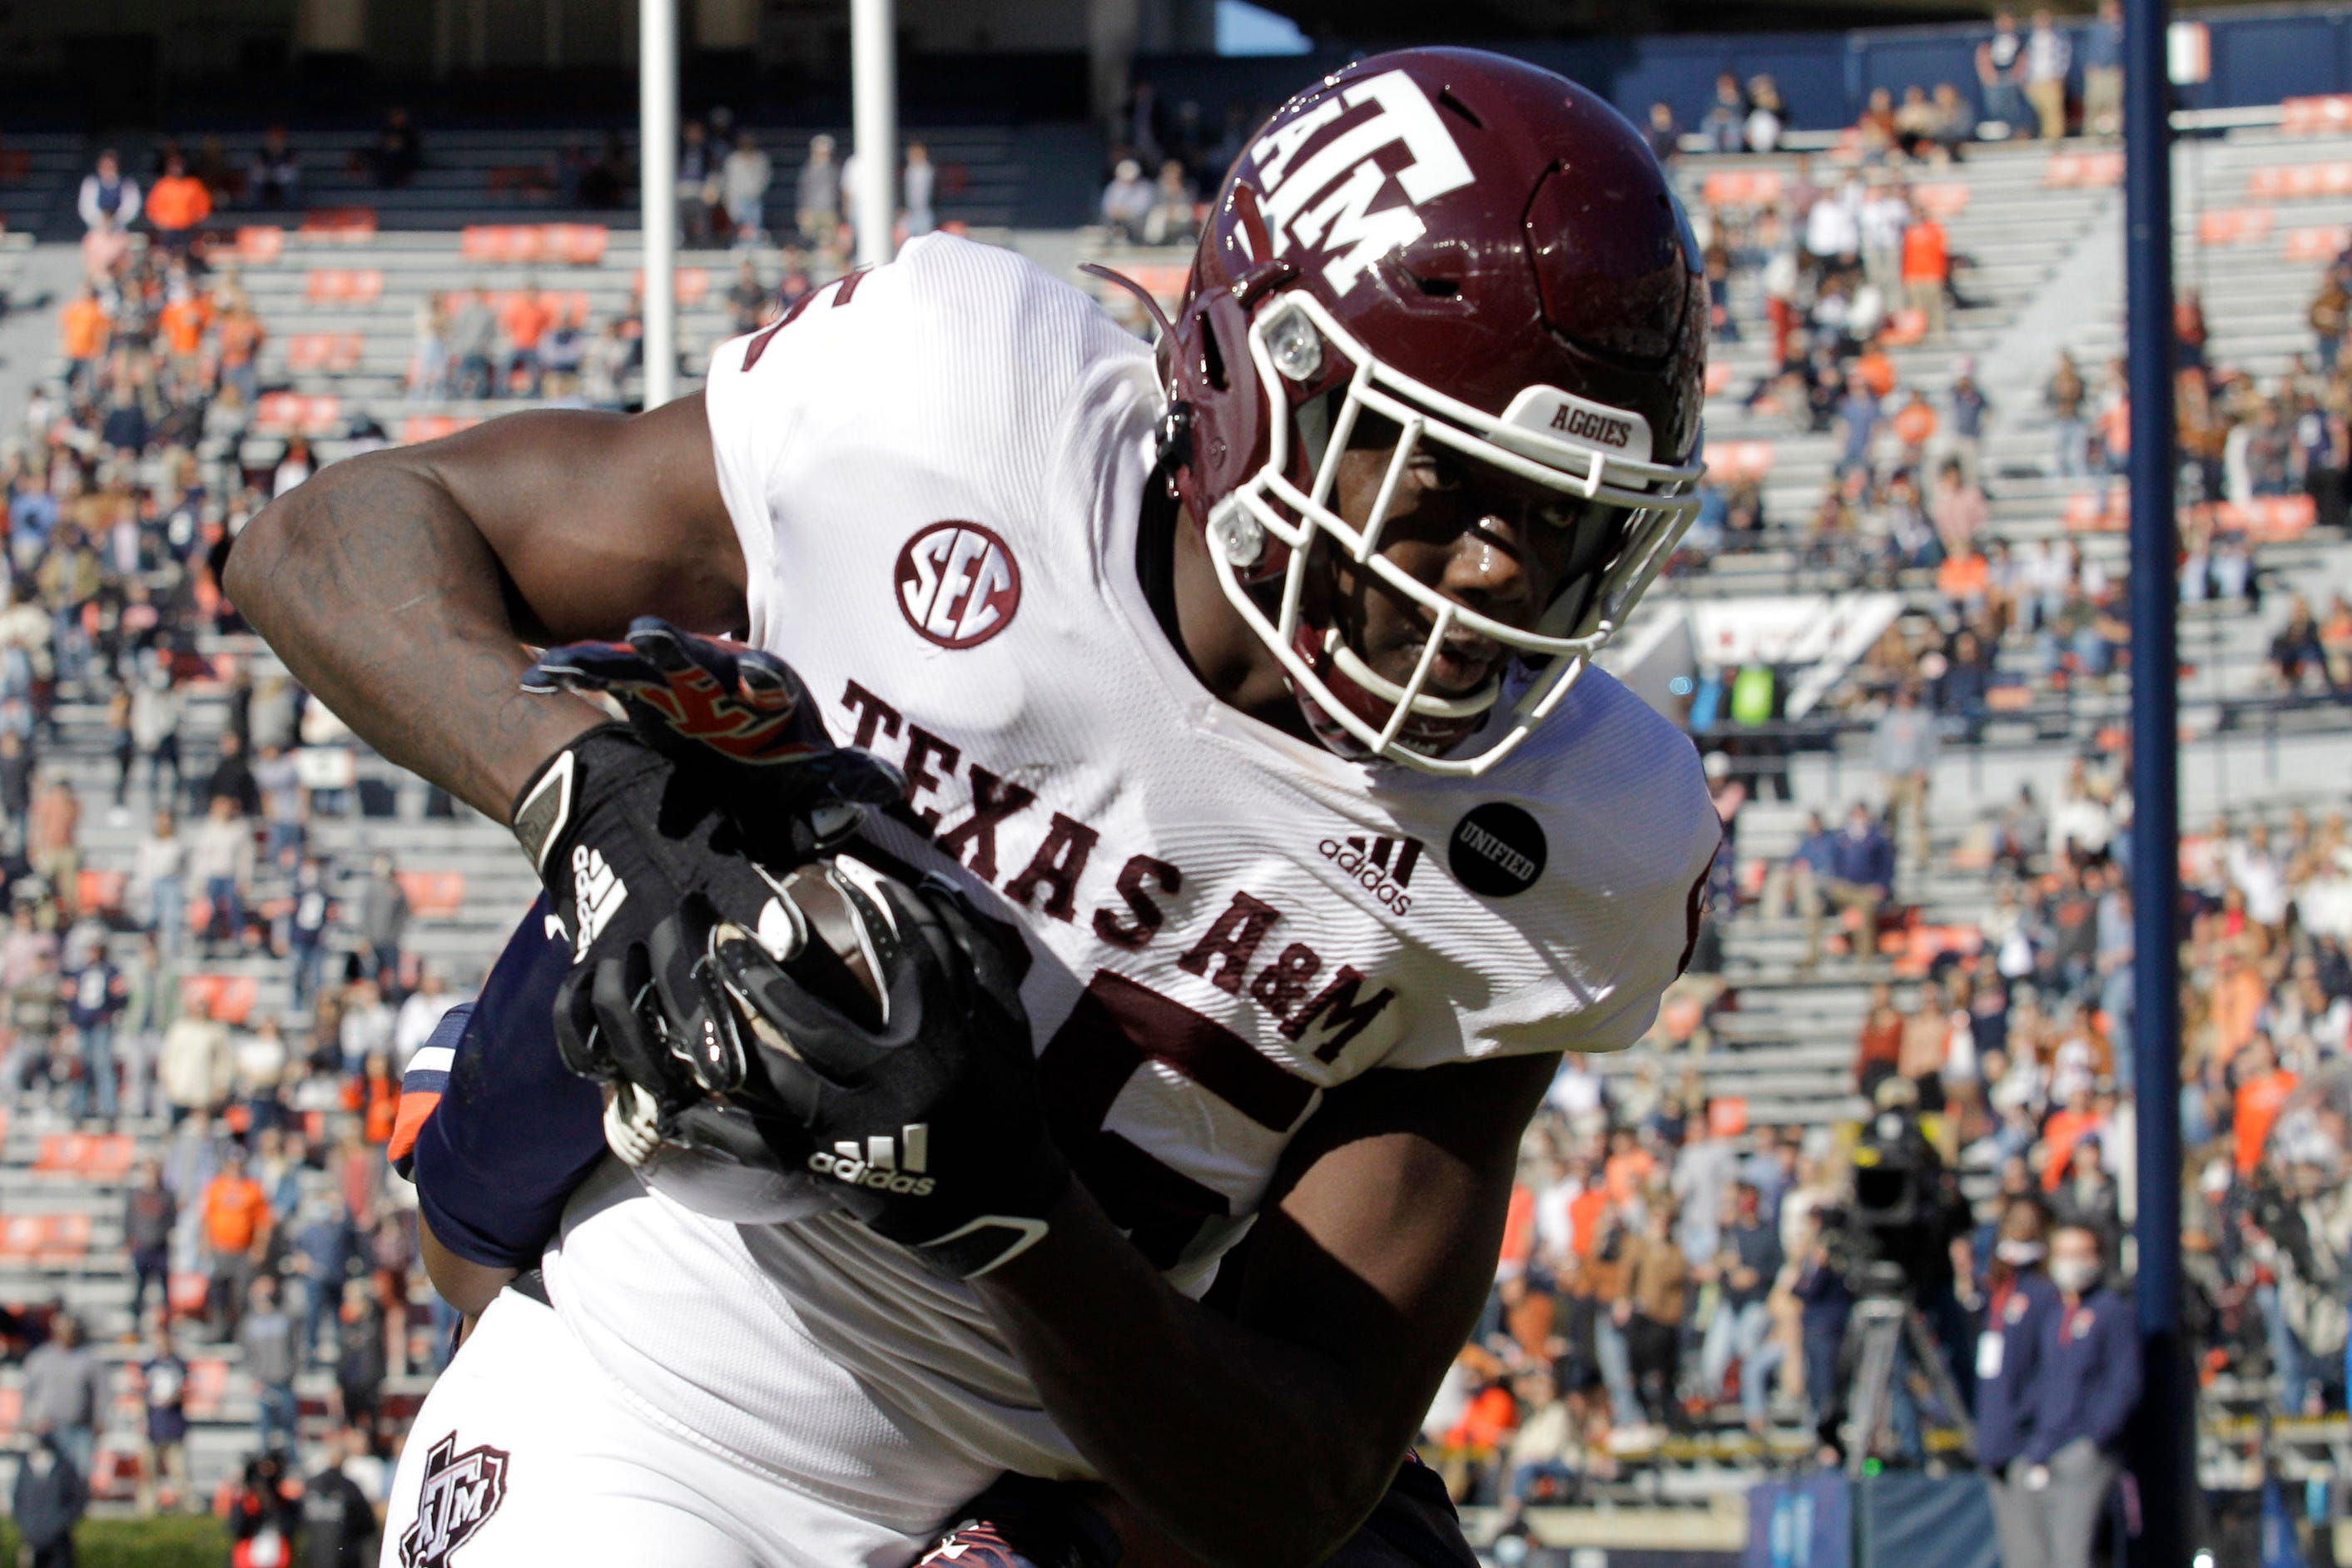 College Football Playoff picture after Week 14 focuses on Texas A&M